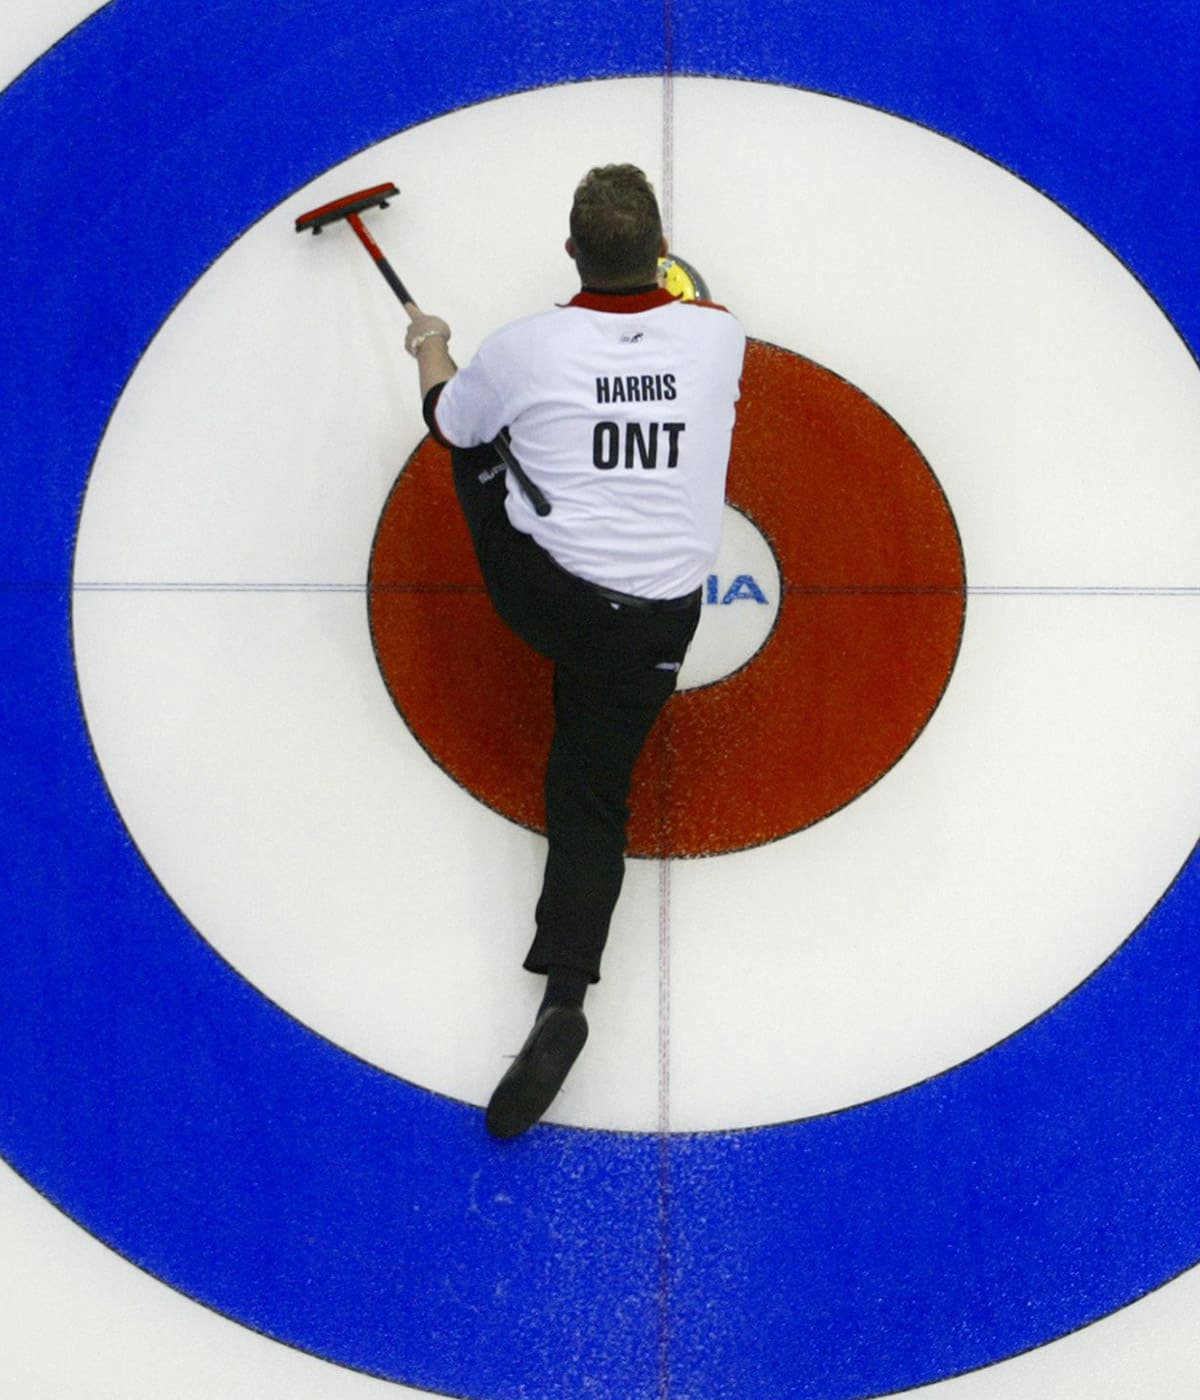 Mike Harris: Canadian curling goes global